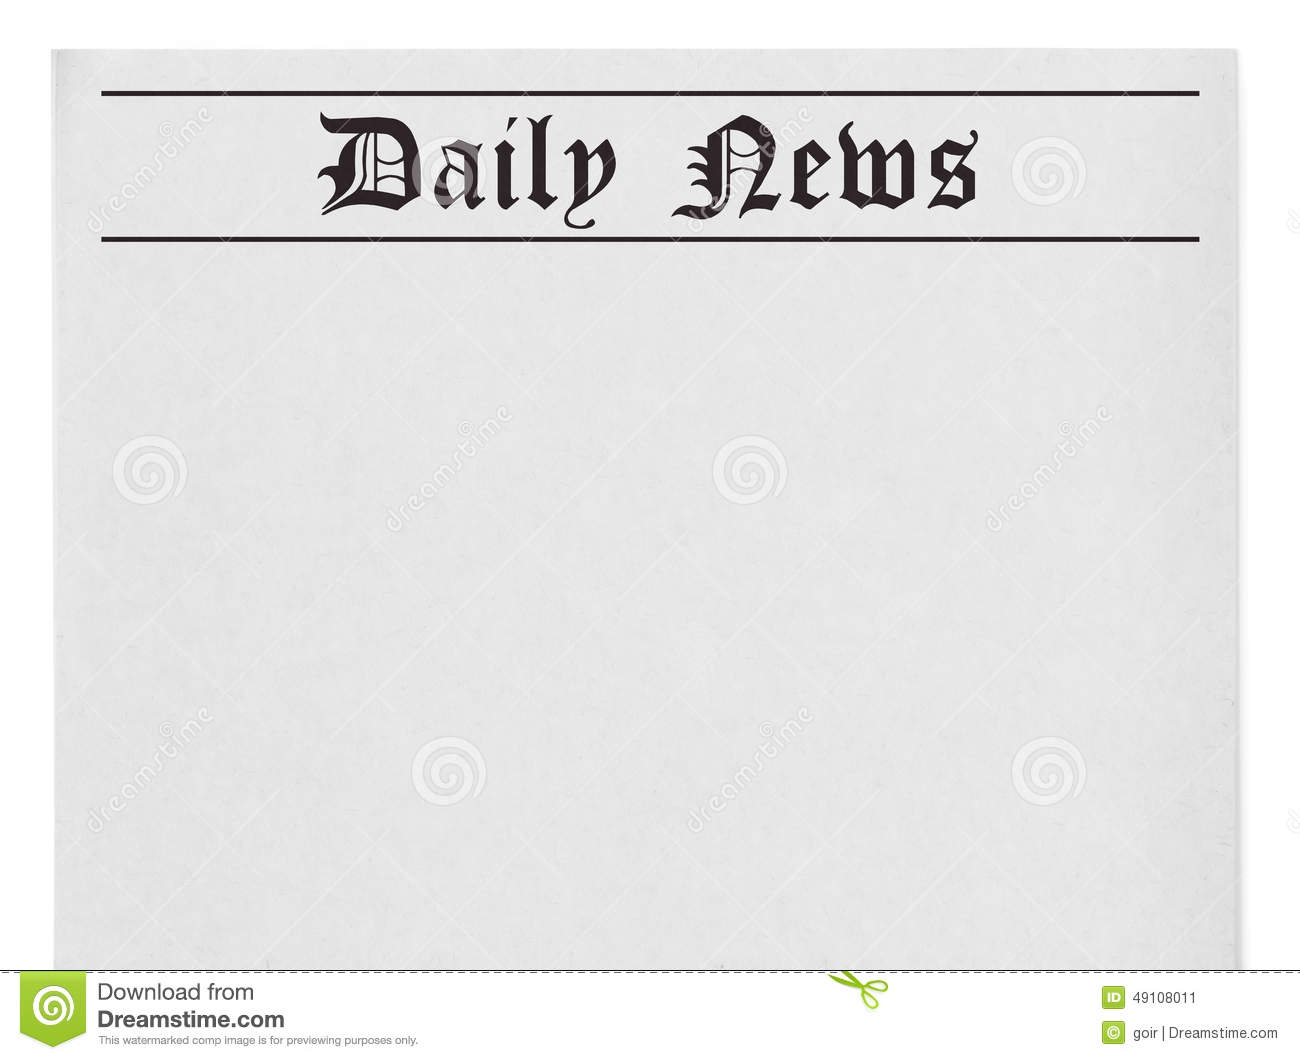 Daily news title on newspaper stock illustration for Daily design news